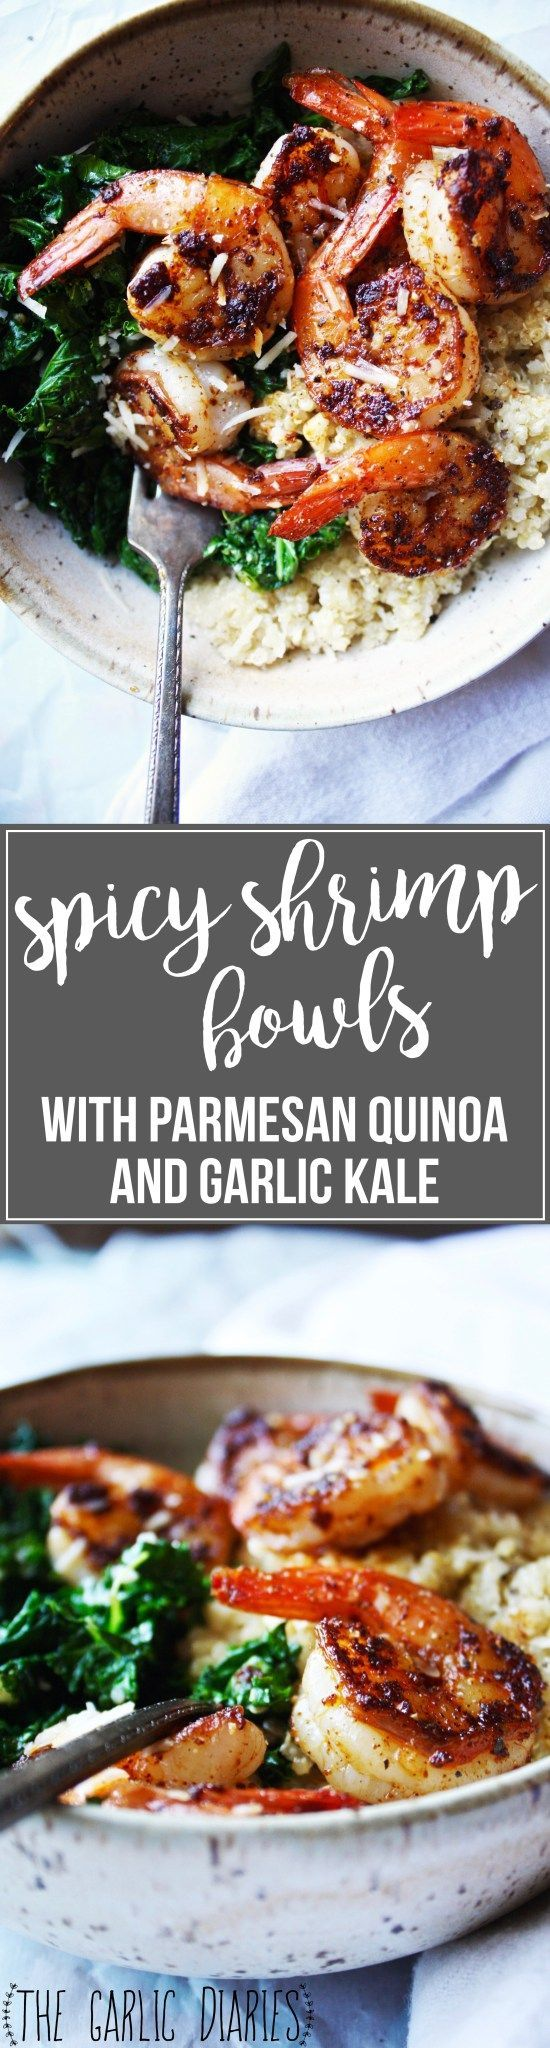 Spicy Shrimp Bowls with Parmesan Quinoa and Garlic Kale [21 Day Fix friendly] - These healthy bowls are quick and easy to make, and they pack SO much fantastic flavor! It's a winner all around! #21dayfix #glutenfree http://TheGarlicDiaries.com